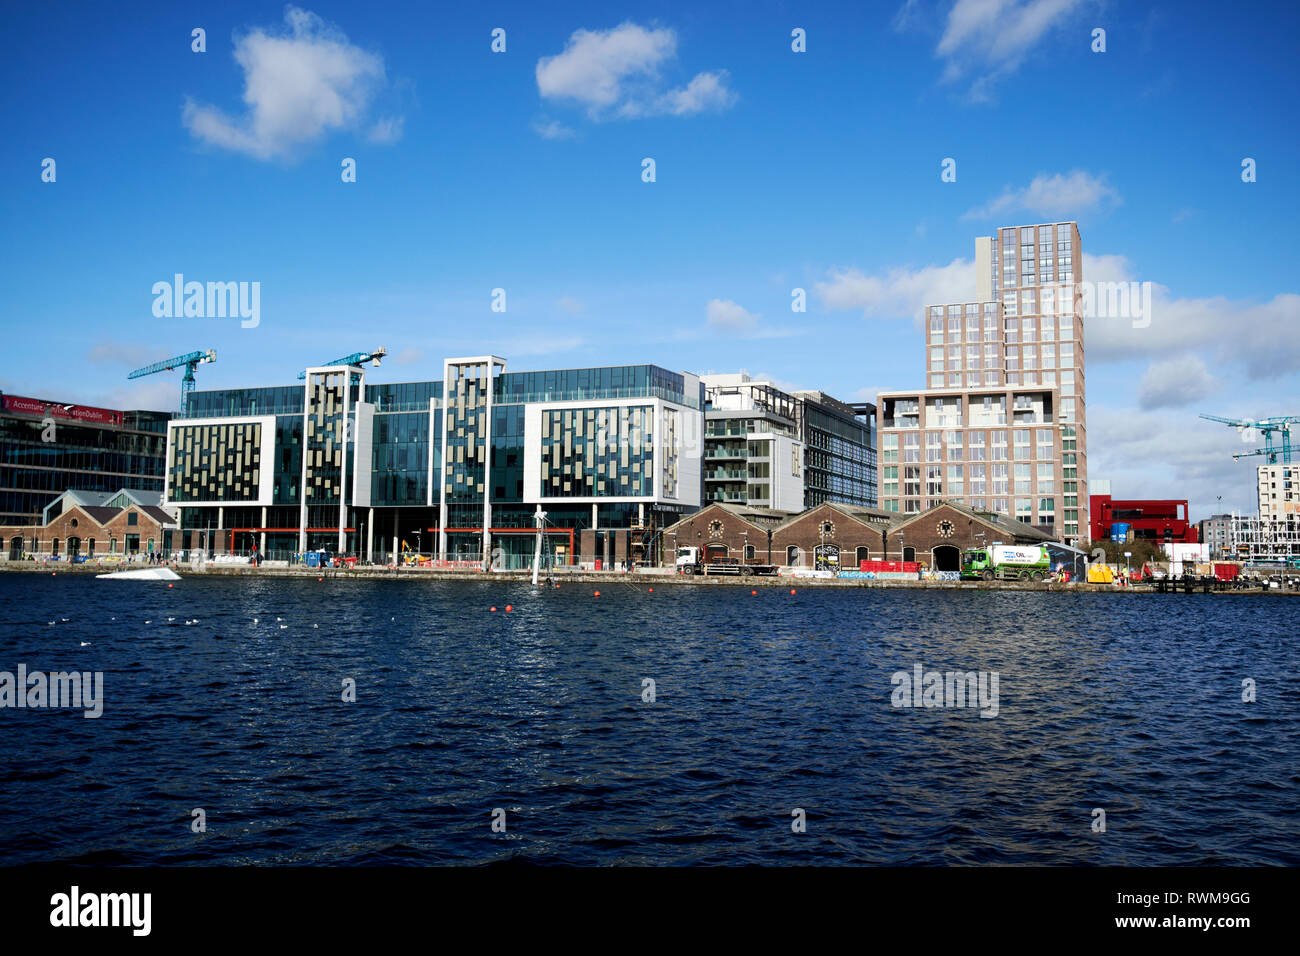 hanover quay and grand canal docks with the new airbnb warehouse headquarters and the reflector building Dublin republic of Ireland - Stock Image